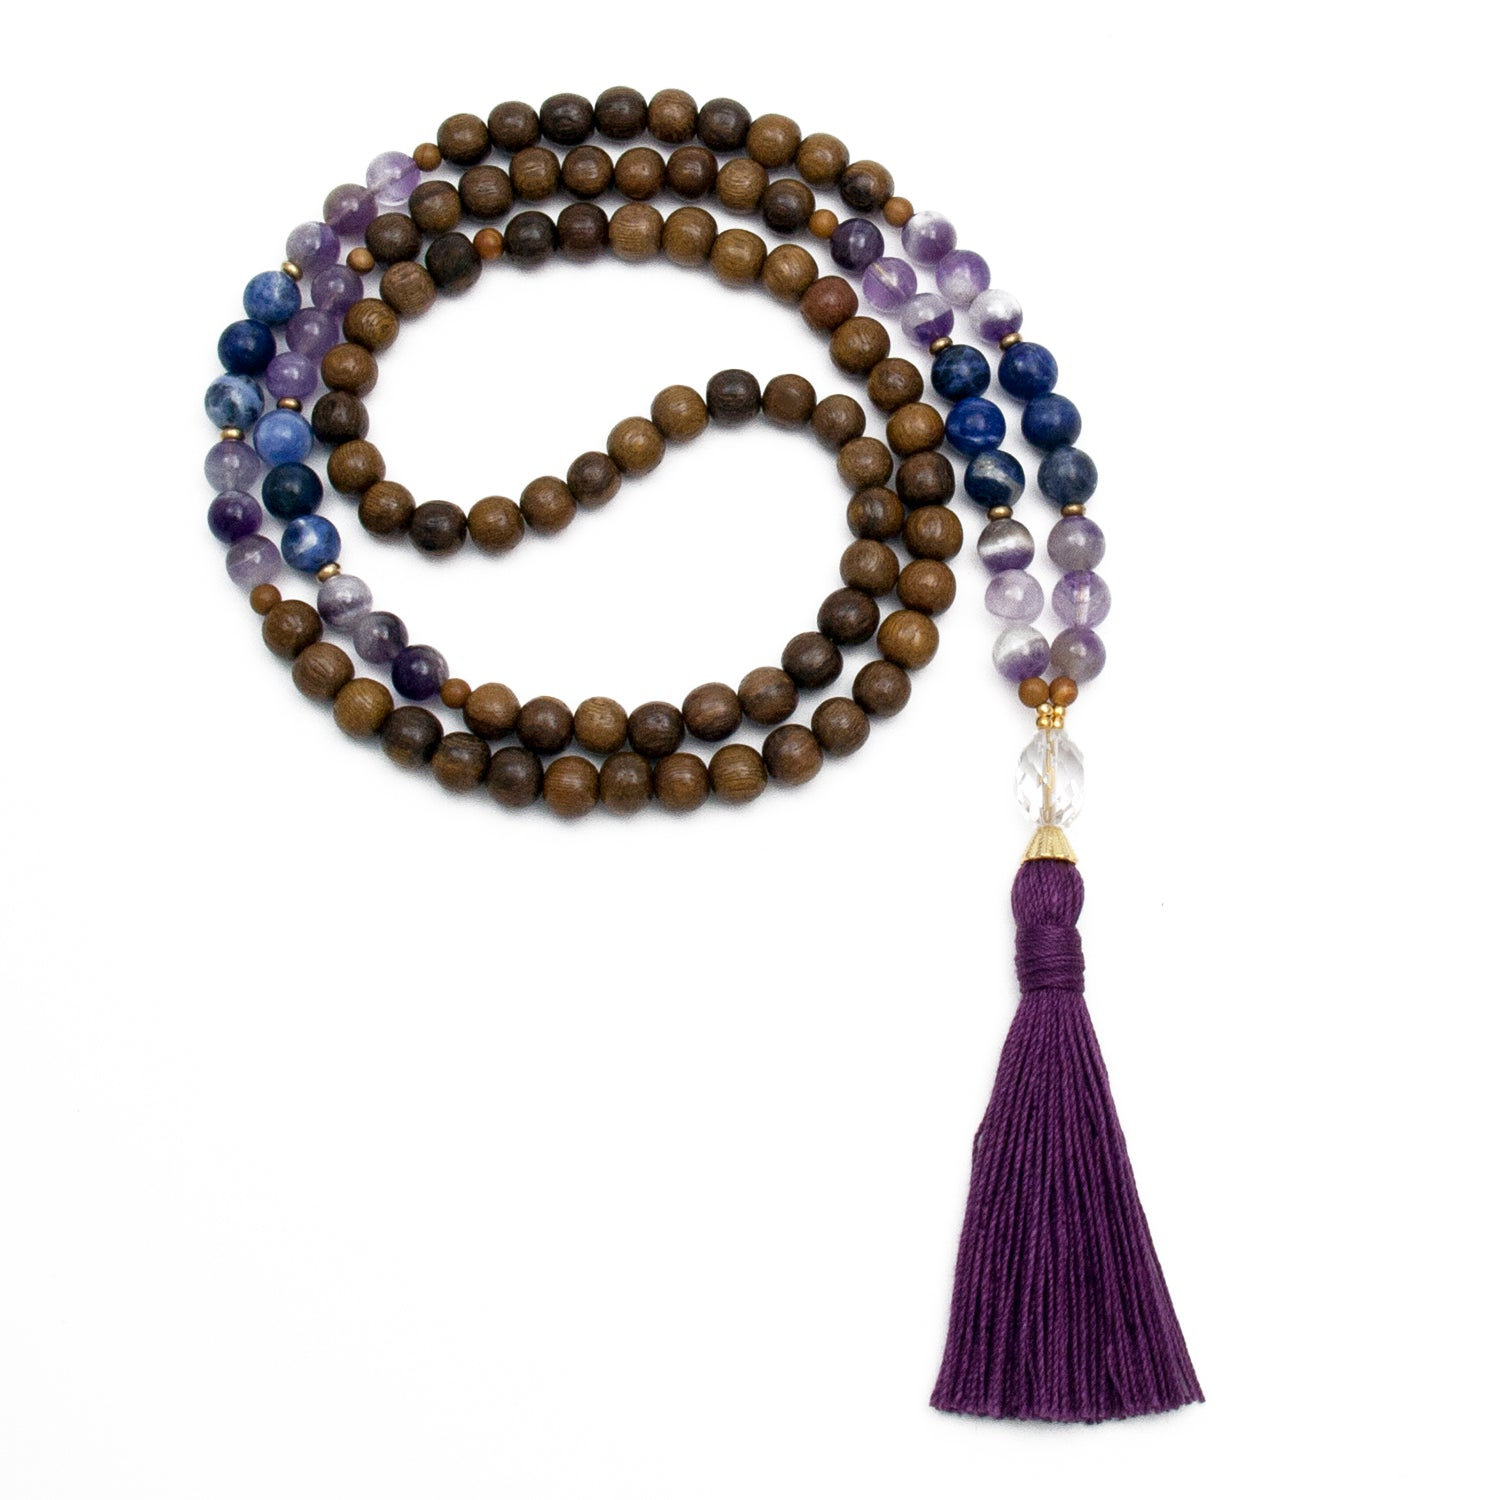 Sagittarius Mala Optimism Astrology Mala Beads